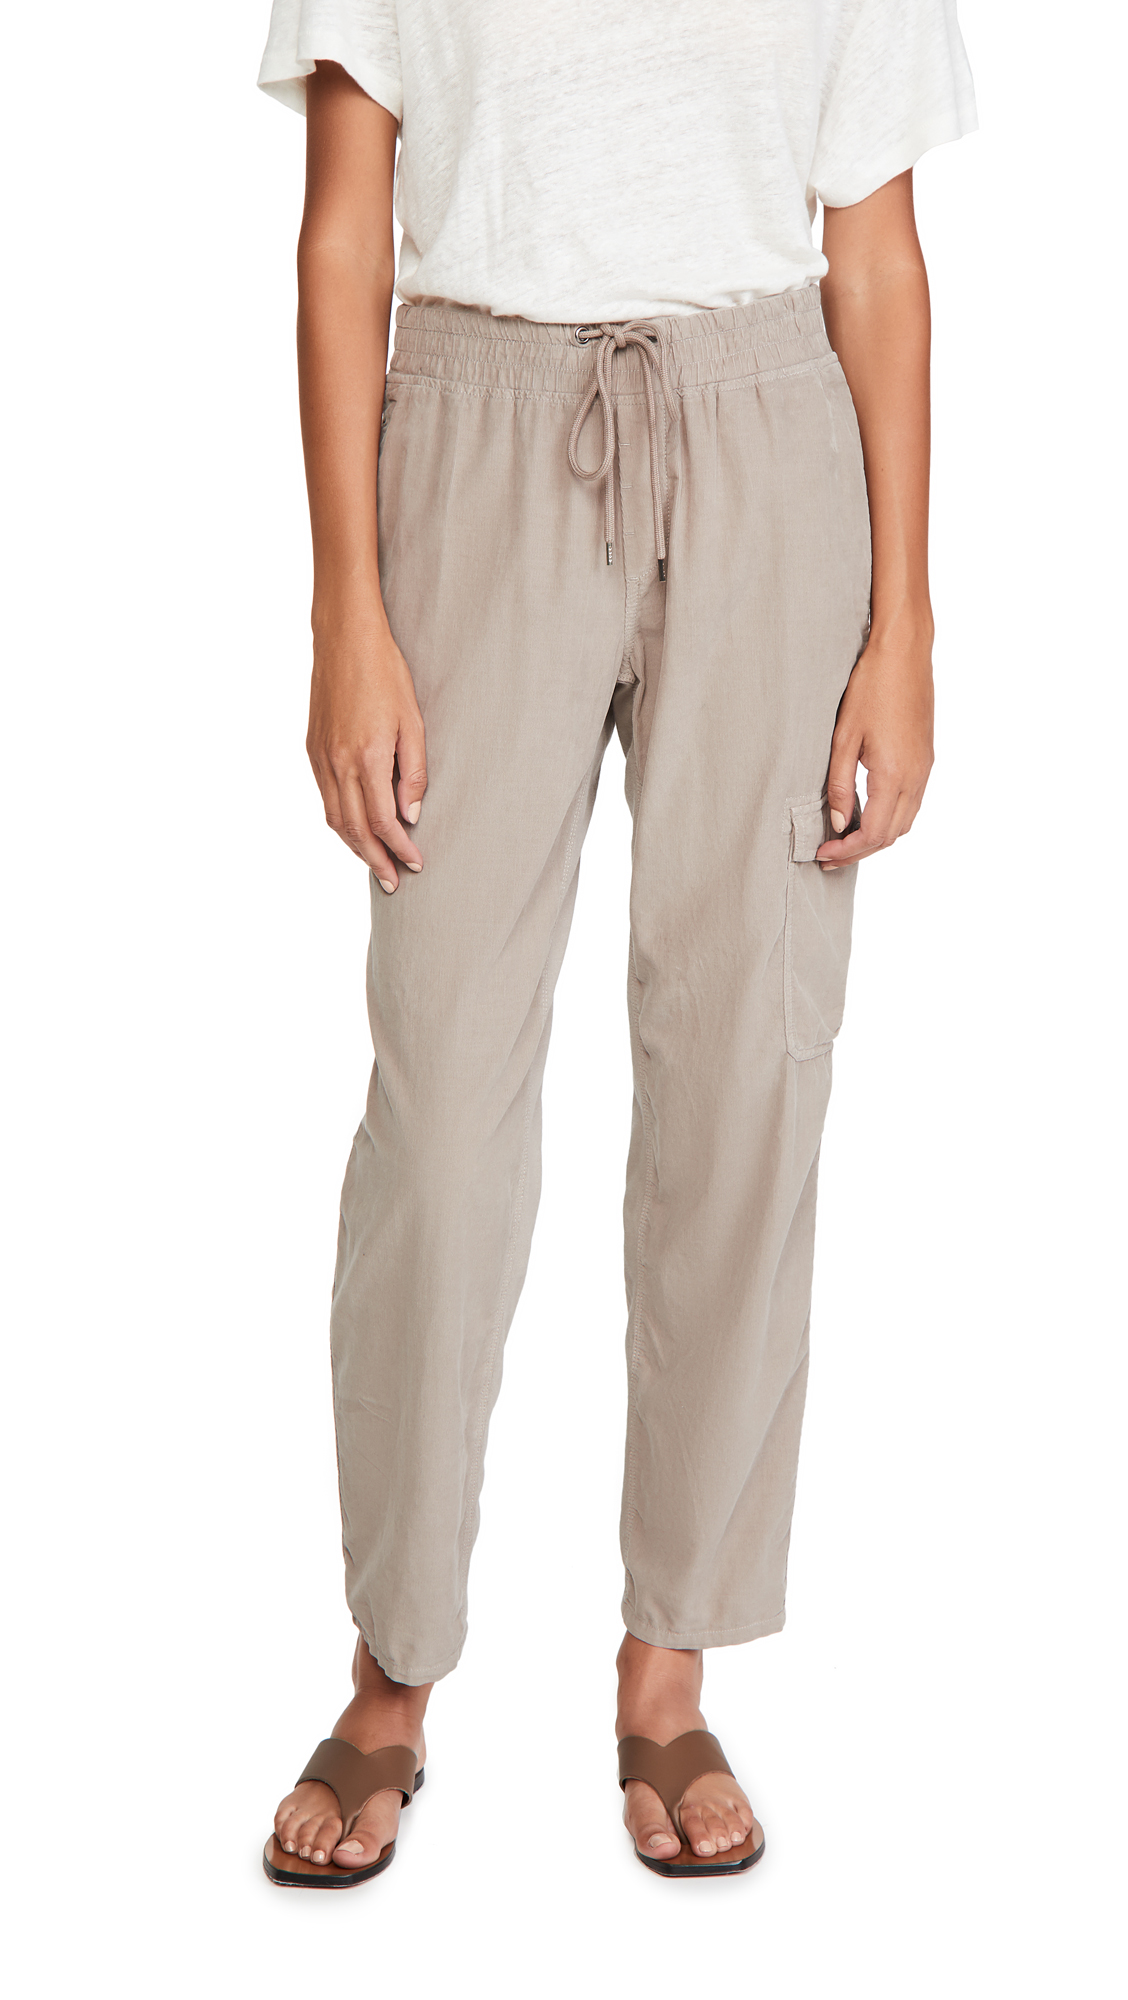 James Perse Cord Mixed Media Pants